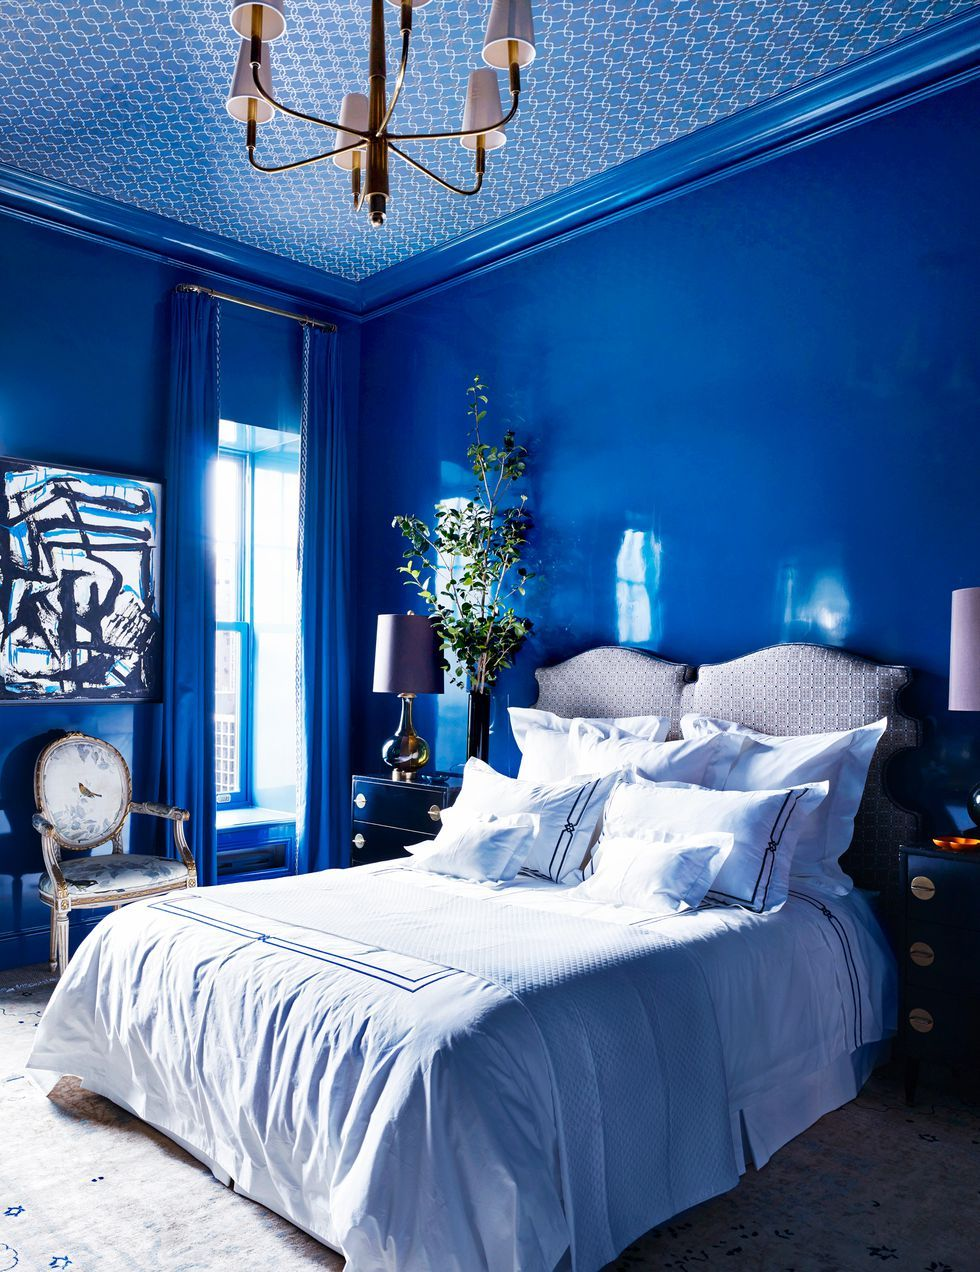 27 Lovely Bedroom Colors That Ll Make You Wake Up Happier Best Bedroom Colors Bedroom Color Schemes Blue Bedroom